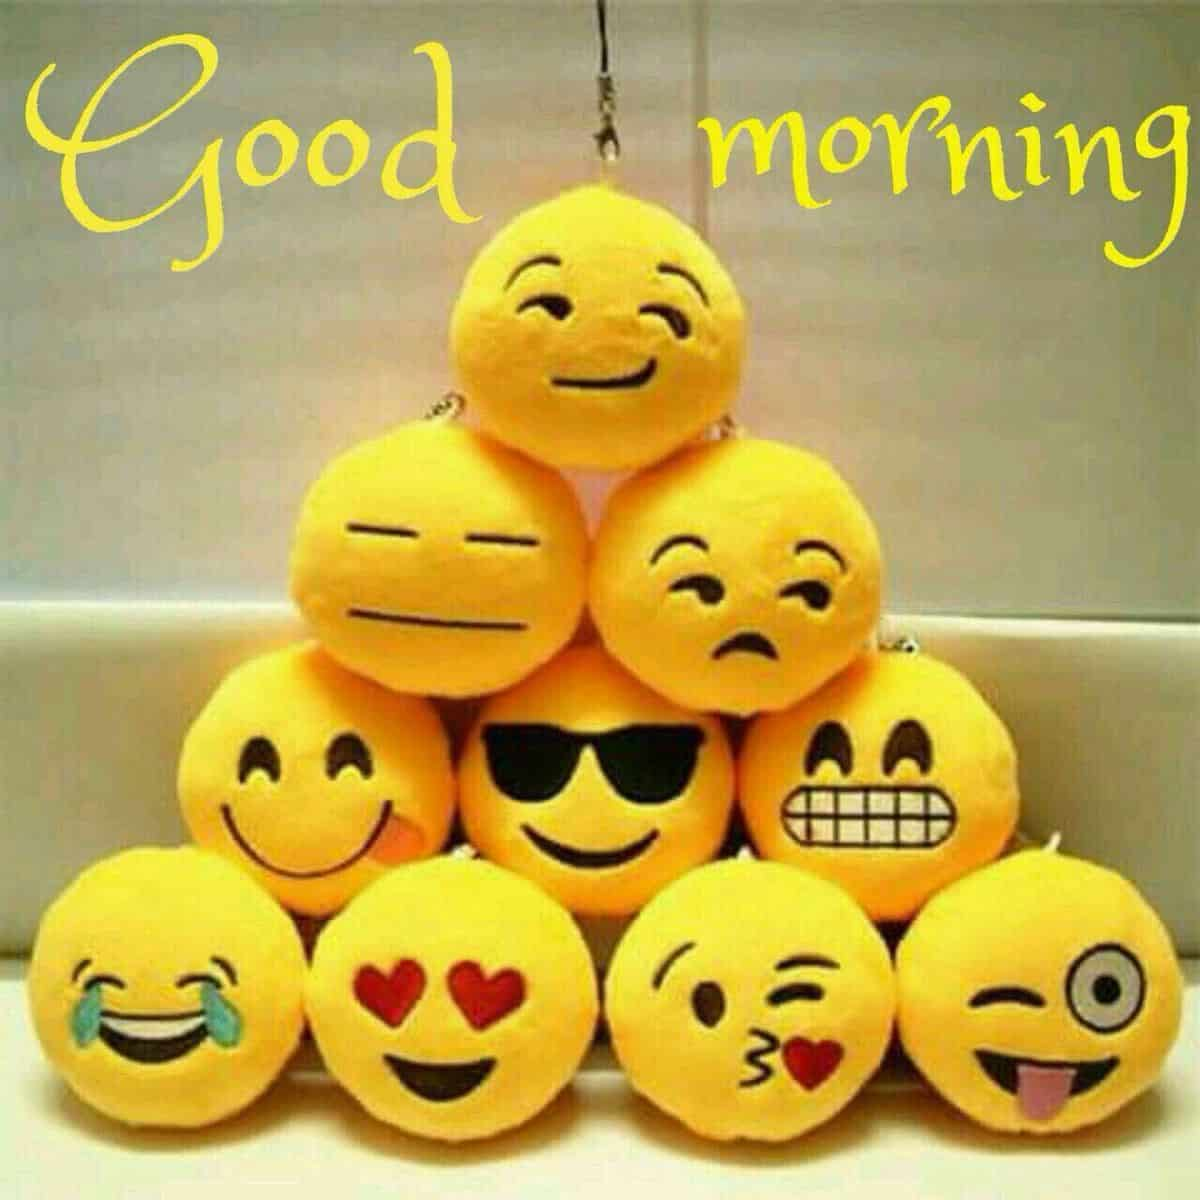 Good Morning Sunday For Her : Morning humor good quotes smiley images ilove